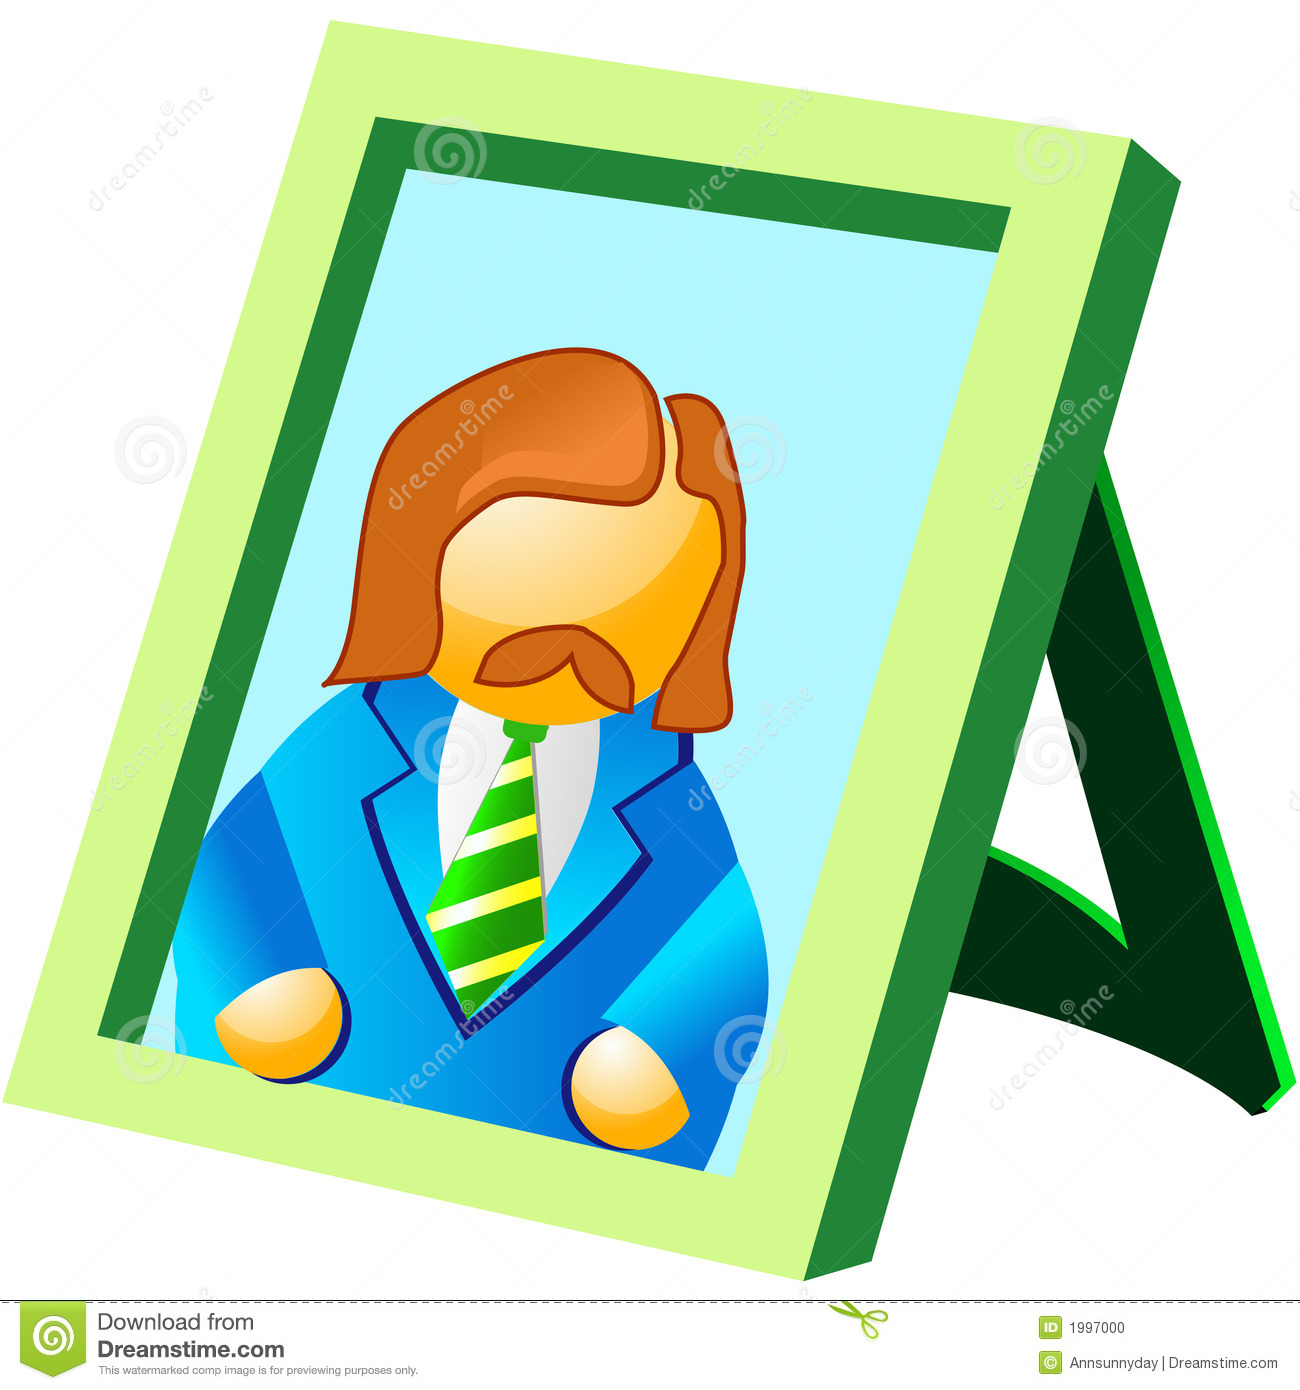 Painting Business Clip Art